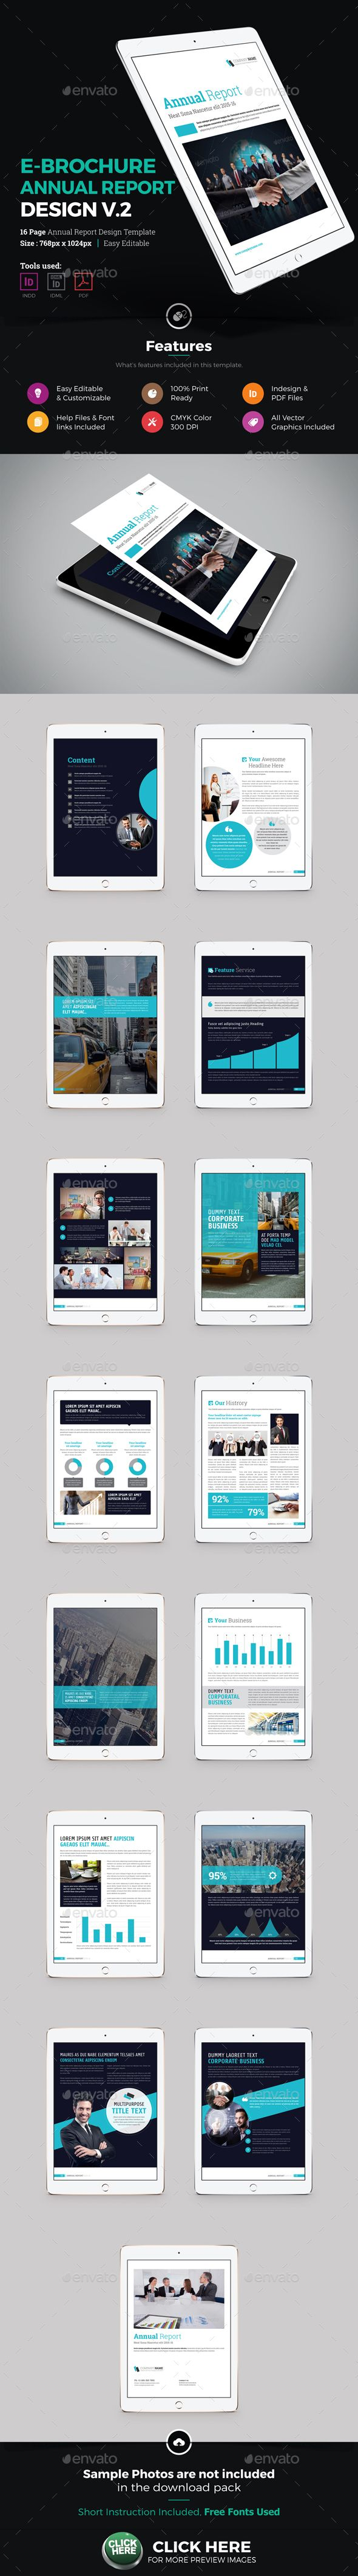 E Brochure Annual Report Design V2 E Publishing Templates